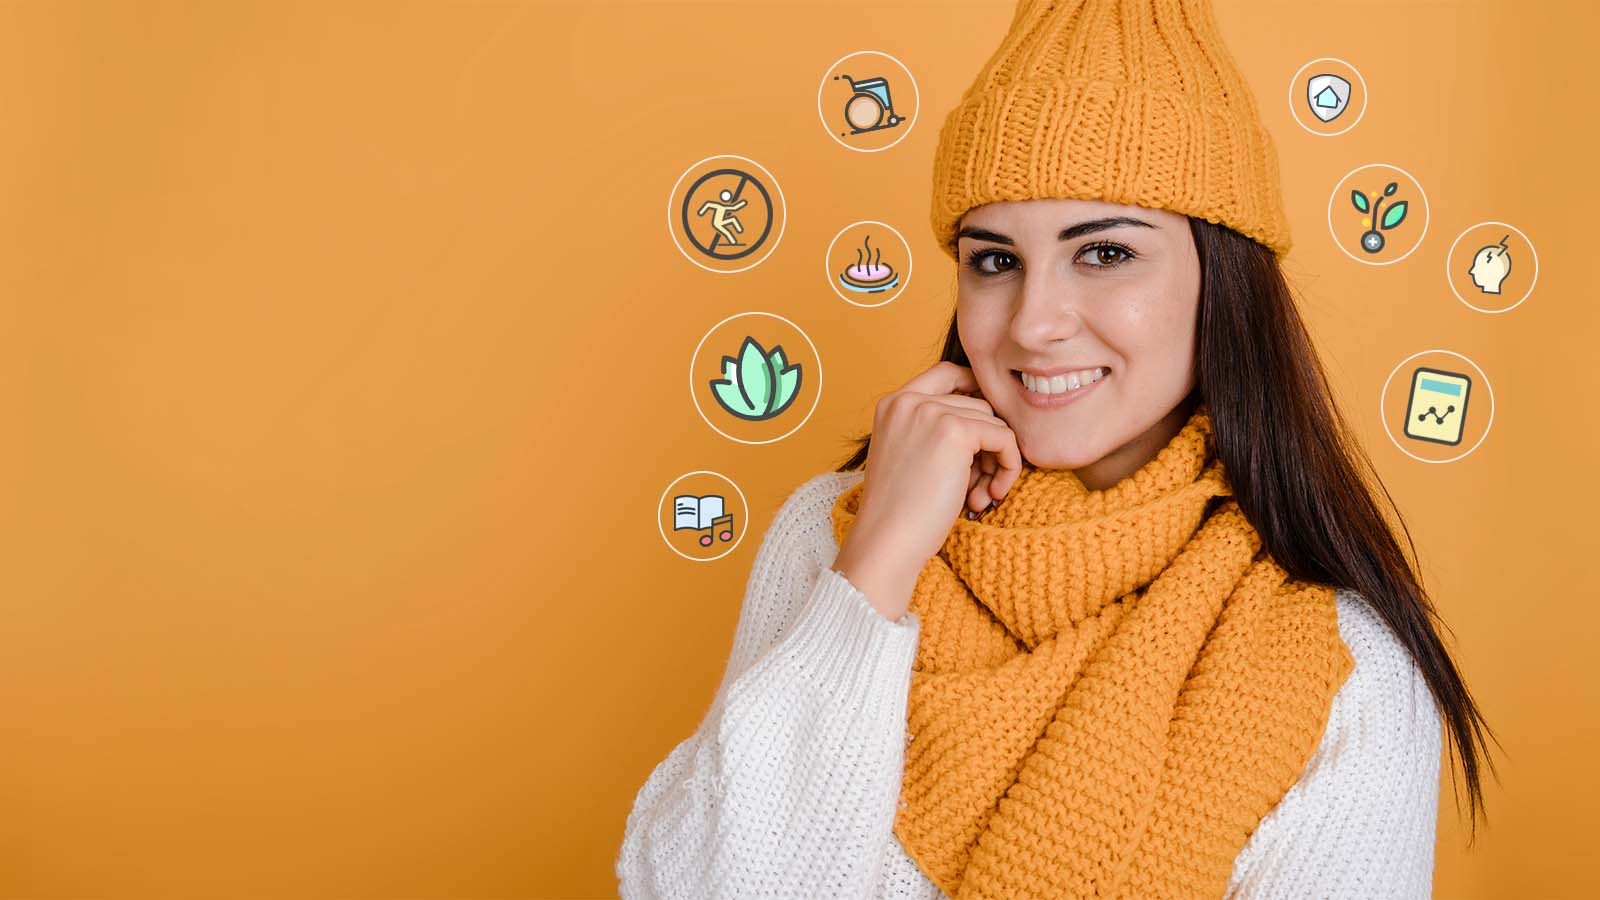 Collection of Health and wellness products for Winters in India by heyzindagi.com.